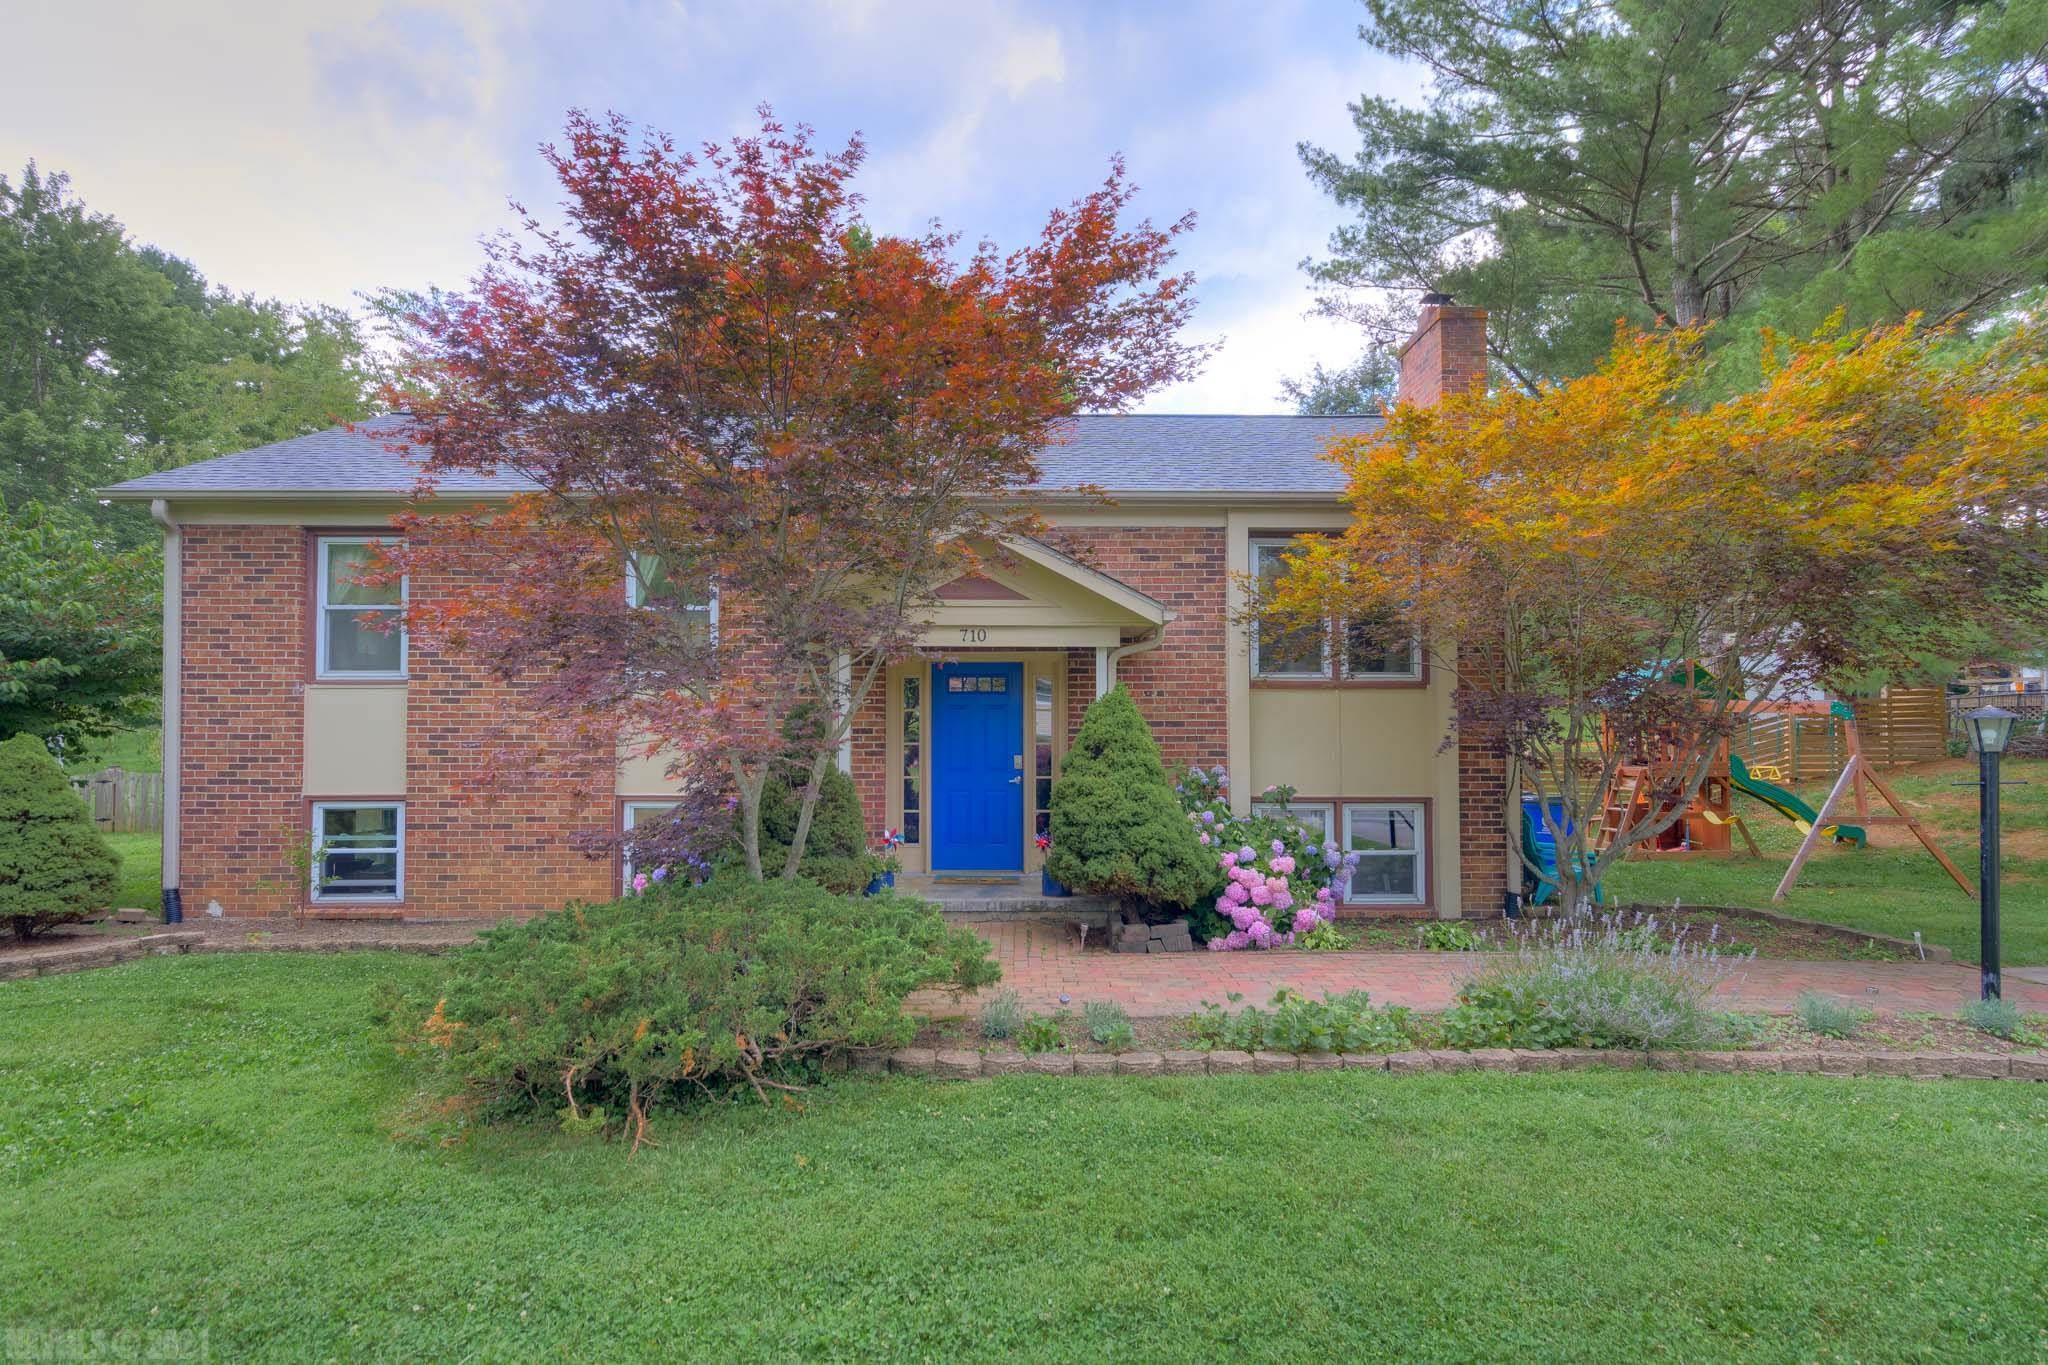 Just one mile from VT and walking distance to downtown, this 4BD/2.5BA home is one you don't want to miss!  The main level is drenched in natural light and has an updated kitchen with stainless appliances, living room is open to the dining room, master bedroom with remodeled half bath and a remodeled full bath in the hallway.  Lower level includes den/rec room, large 4th bedroom, generous full bath with double vanity, laundry room and ample storage areas.  Flat lot has a fenced in backyard, garden area, shed and deck for grilling and entertain or relaxing.  Also within walking distance to elementary school (Gilbert Linkous), grocery shopping, restaurants and post office.  Three BT bus stops nearby.  Virtual Tour and Floor Plans attached.